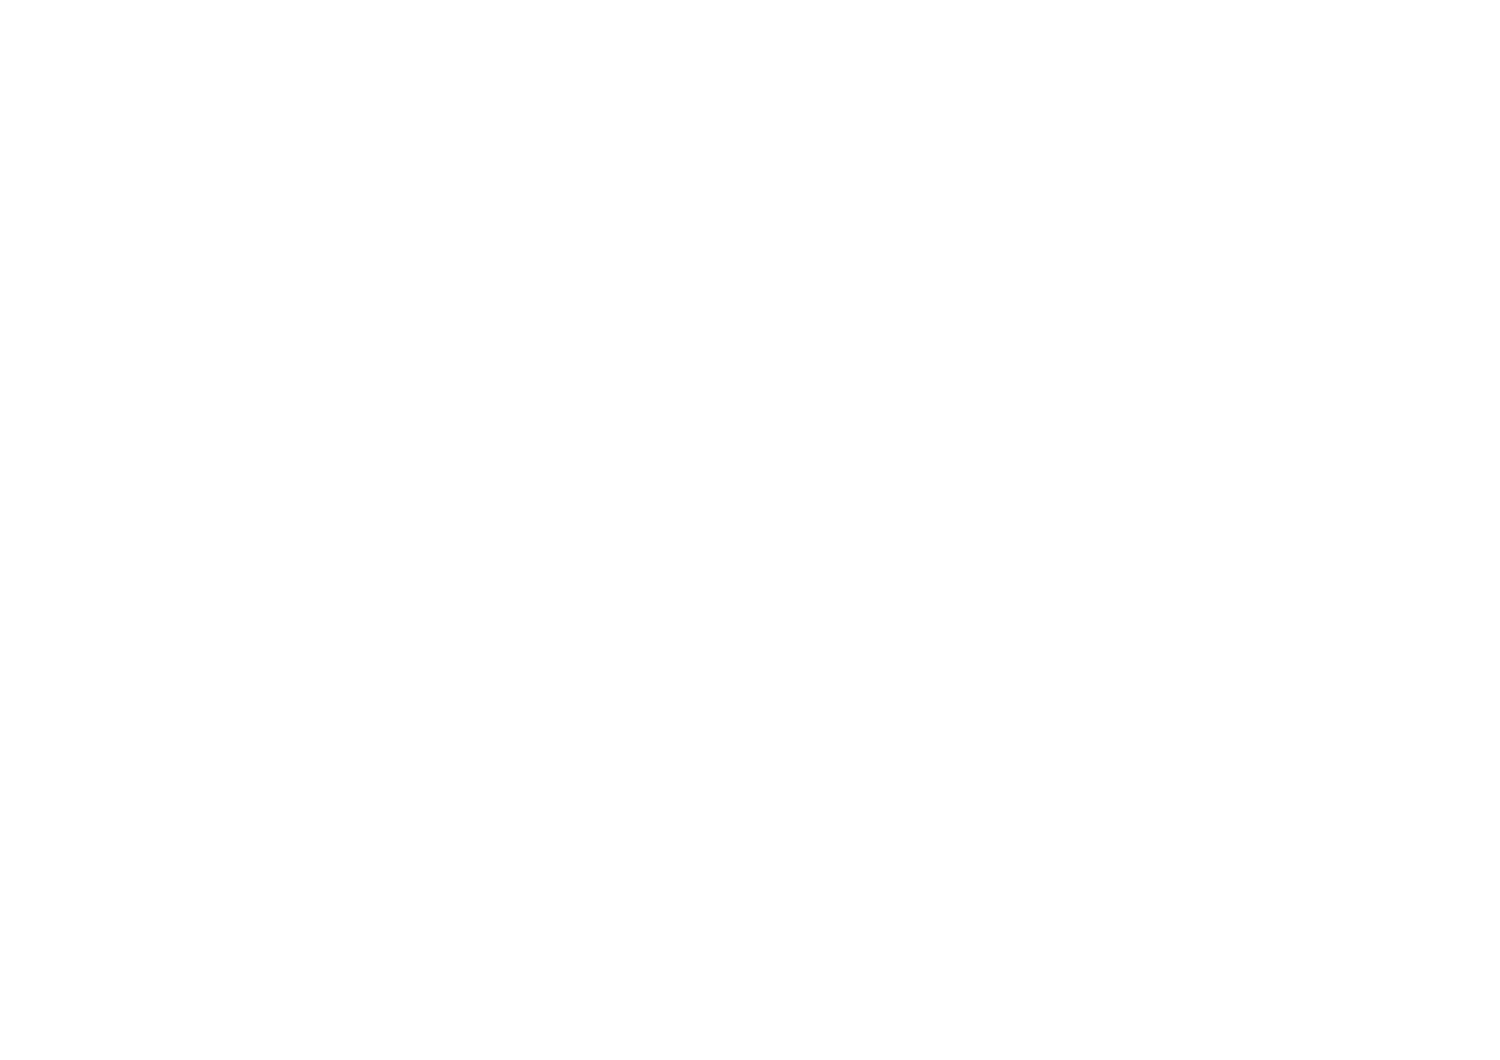 RÅBAR MADE IN STOCKHOLM